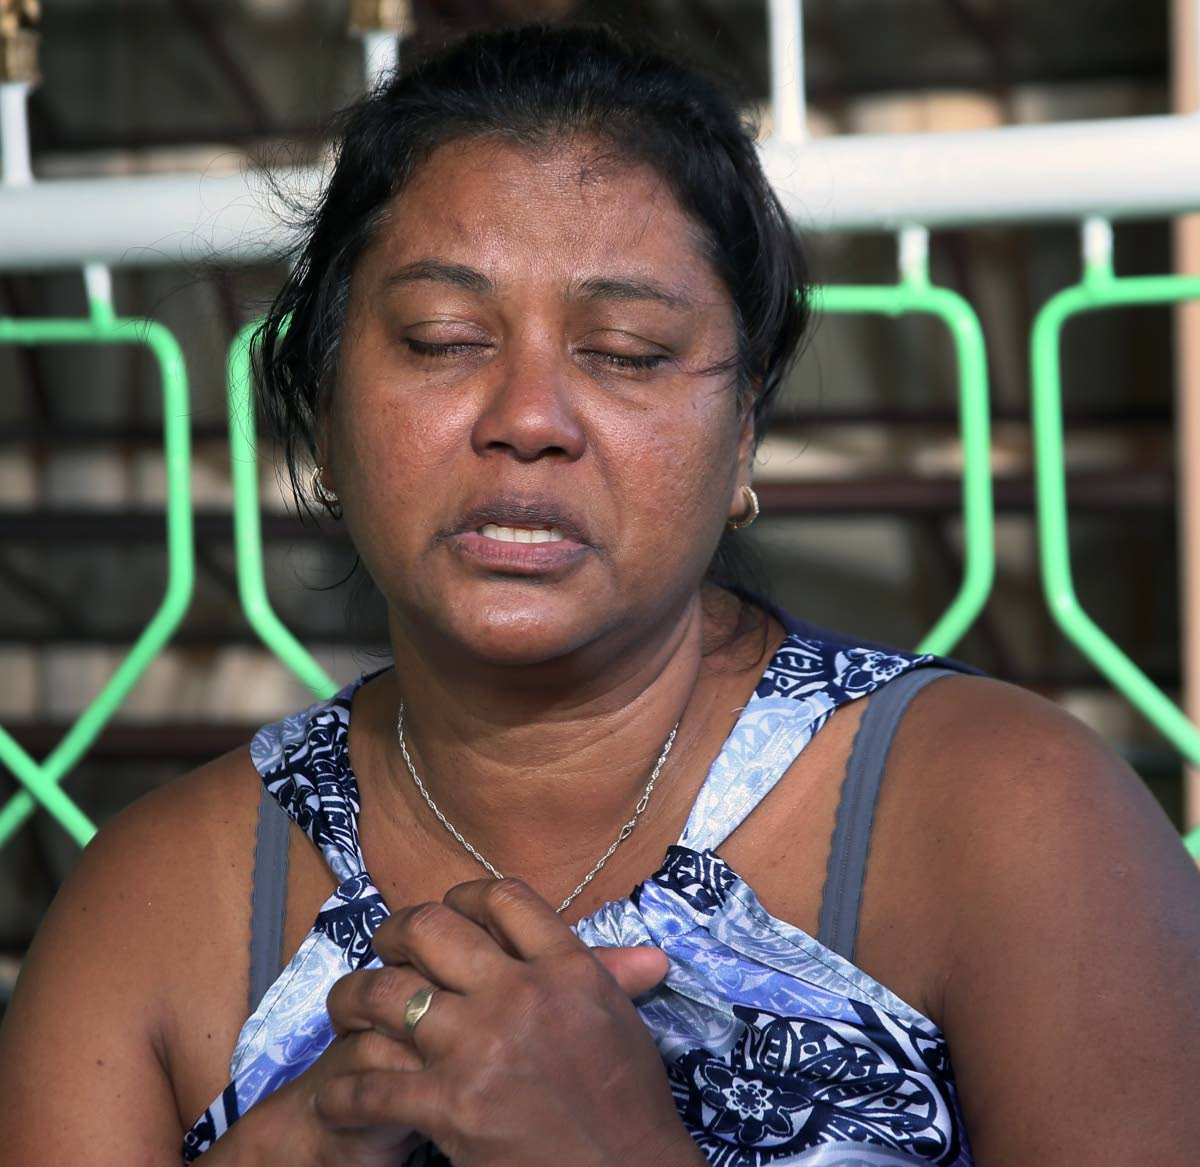 Wife's Pain: Asha Boodooram, the wife of murdered Prisons Officer Devendra  Boodooram, clutches her hands close to her heart telling Newsday how much it pains her heart following the senseless murder of her husband. Boodram was the father of two girls. PHOTO BY AZLAN MOHAMMED]